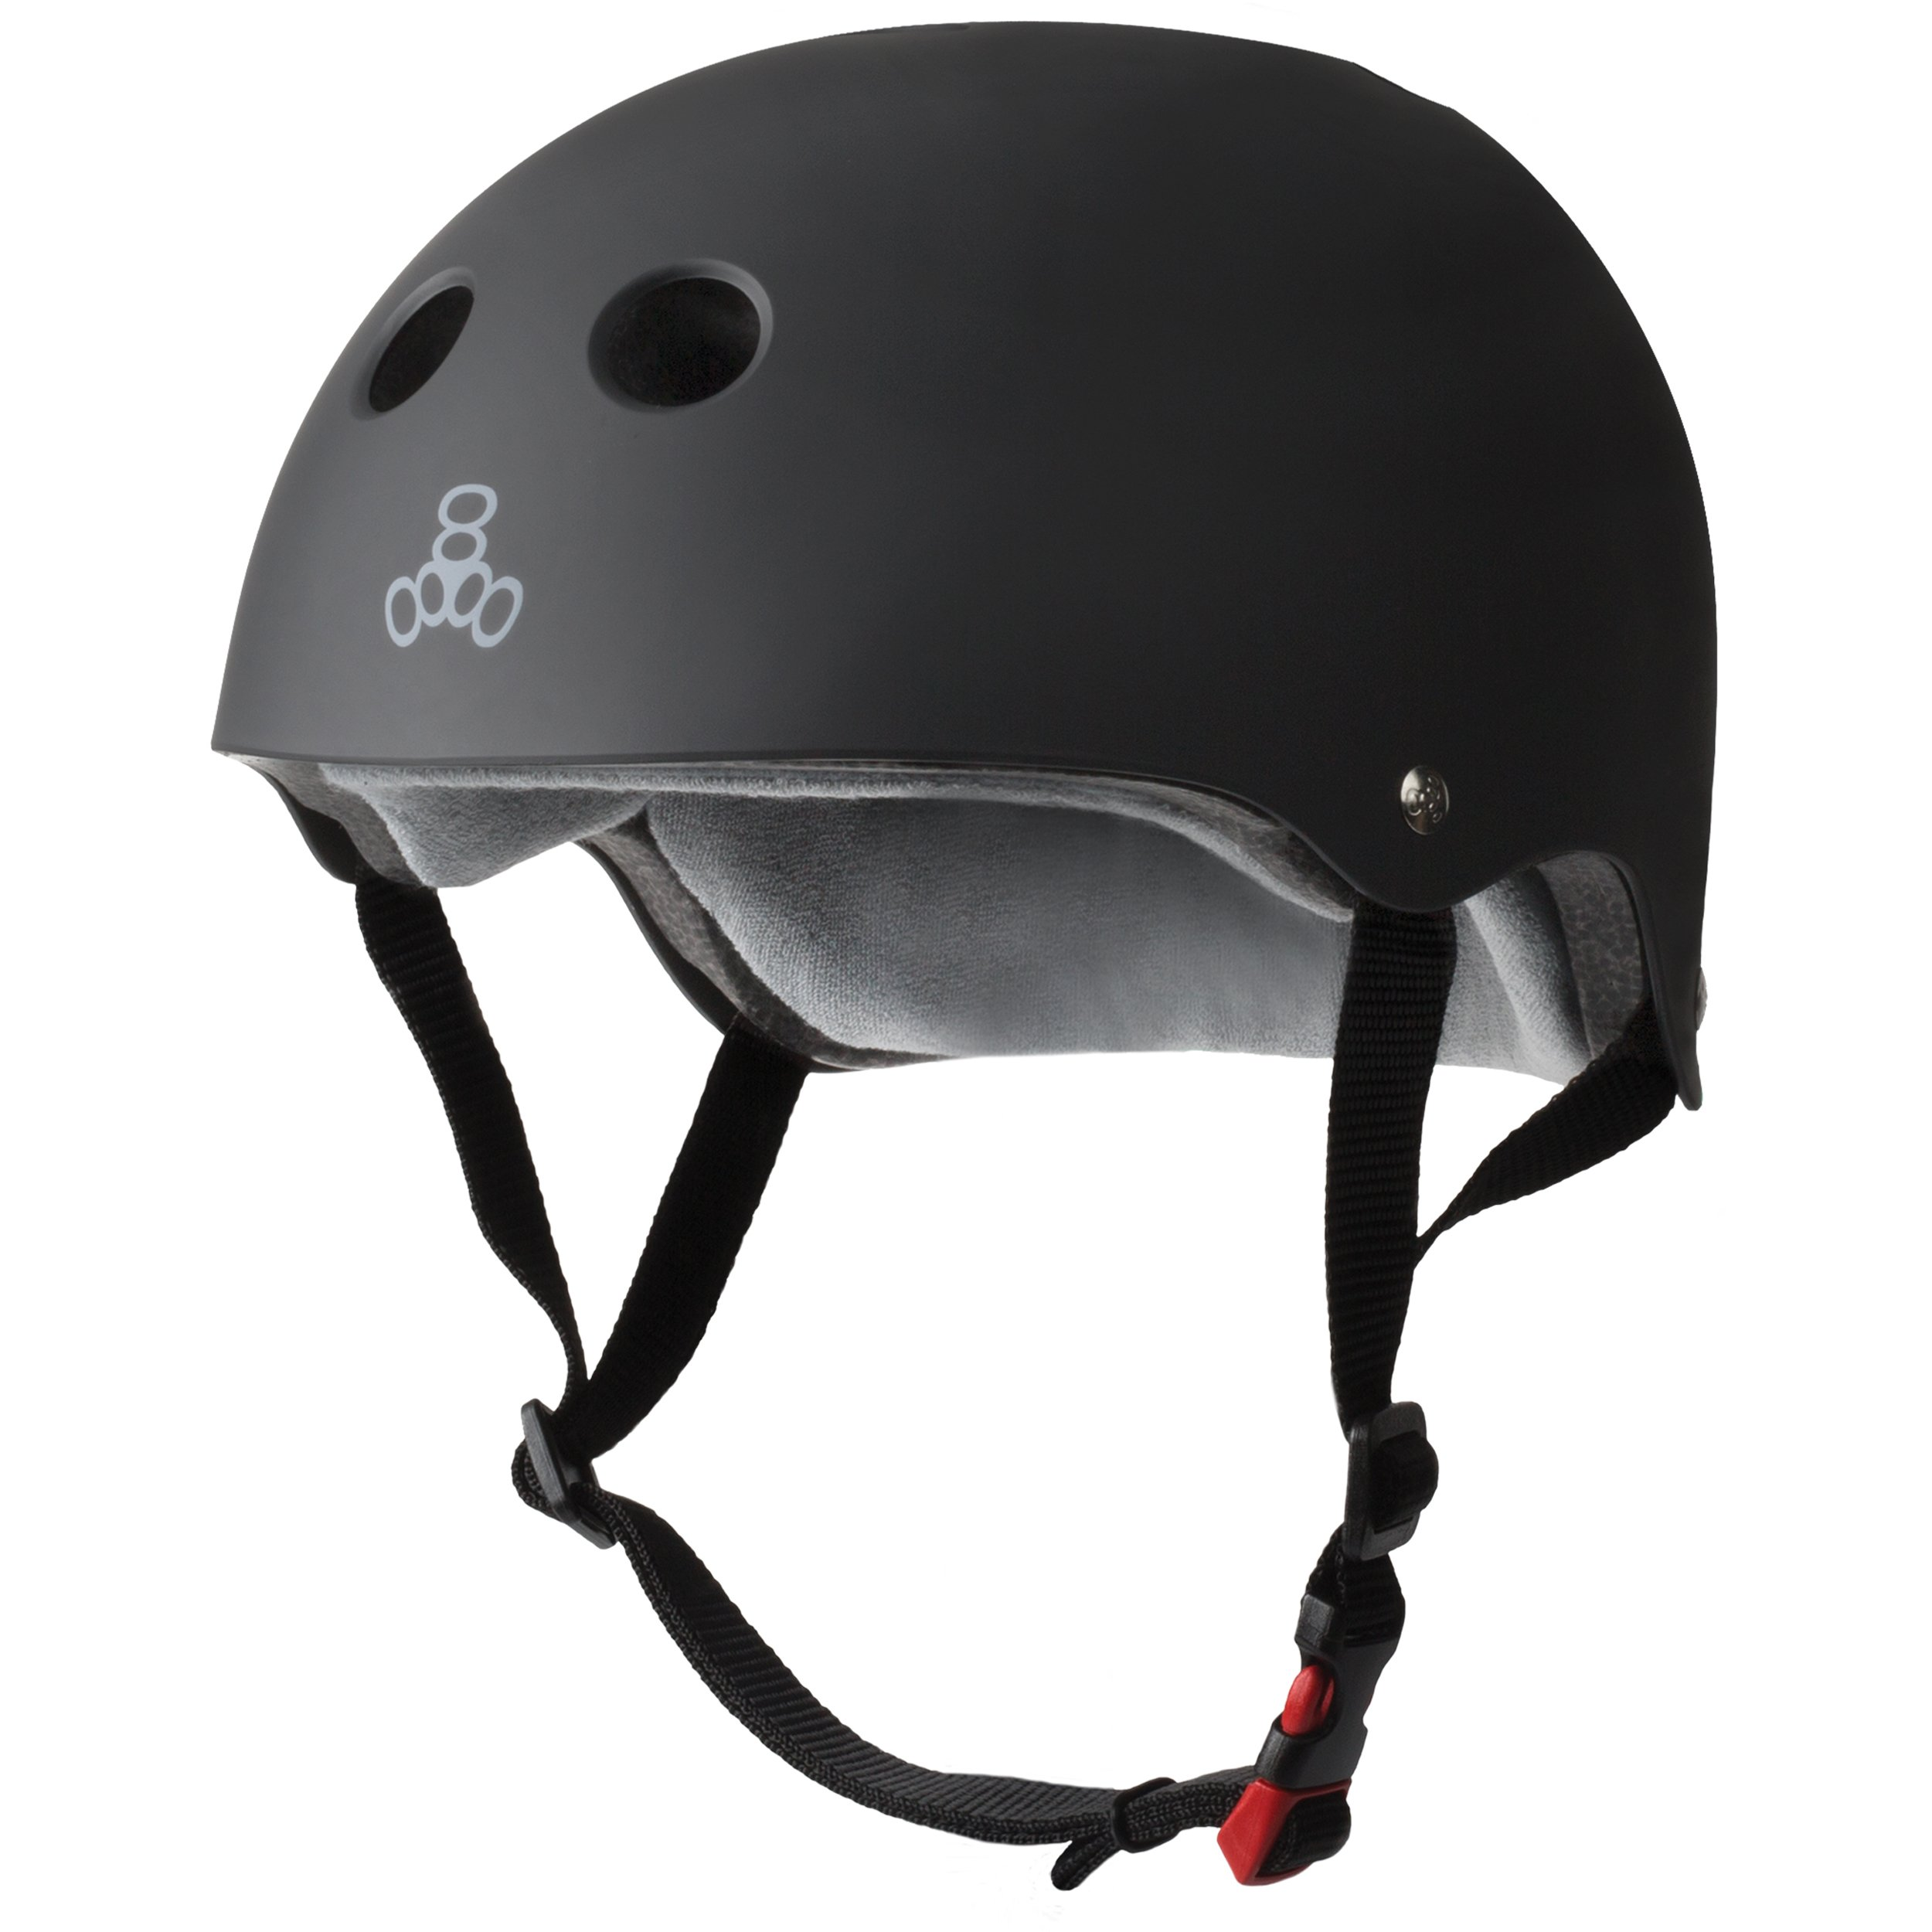 Triple 8 THE Certified Sweatsaver Helmet for Skateboarding, BMX, Roller Skating and Action Sports, Black Rubber, L/XL